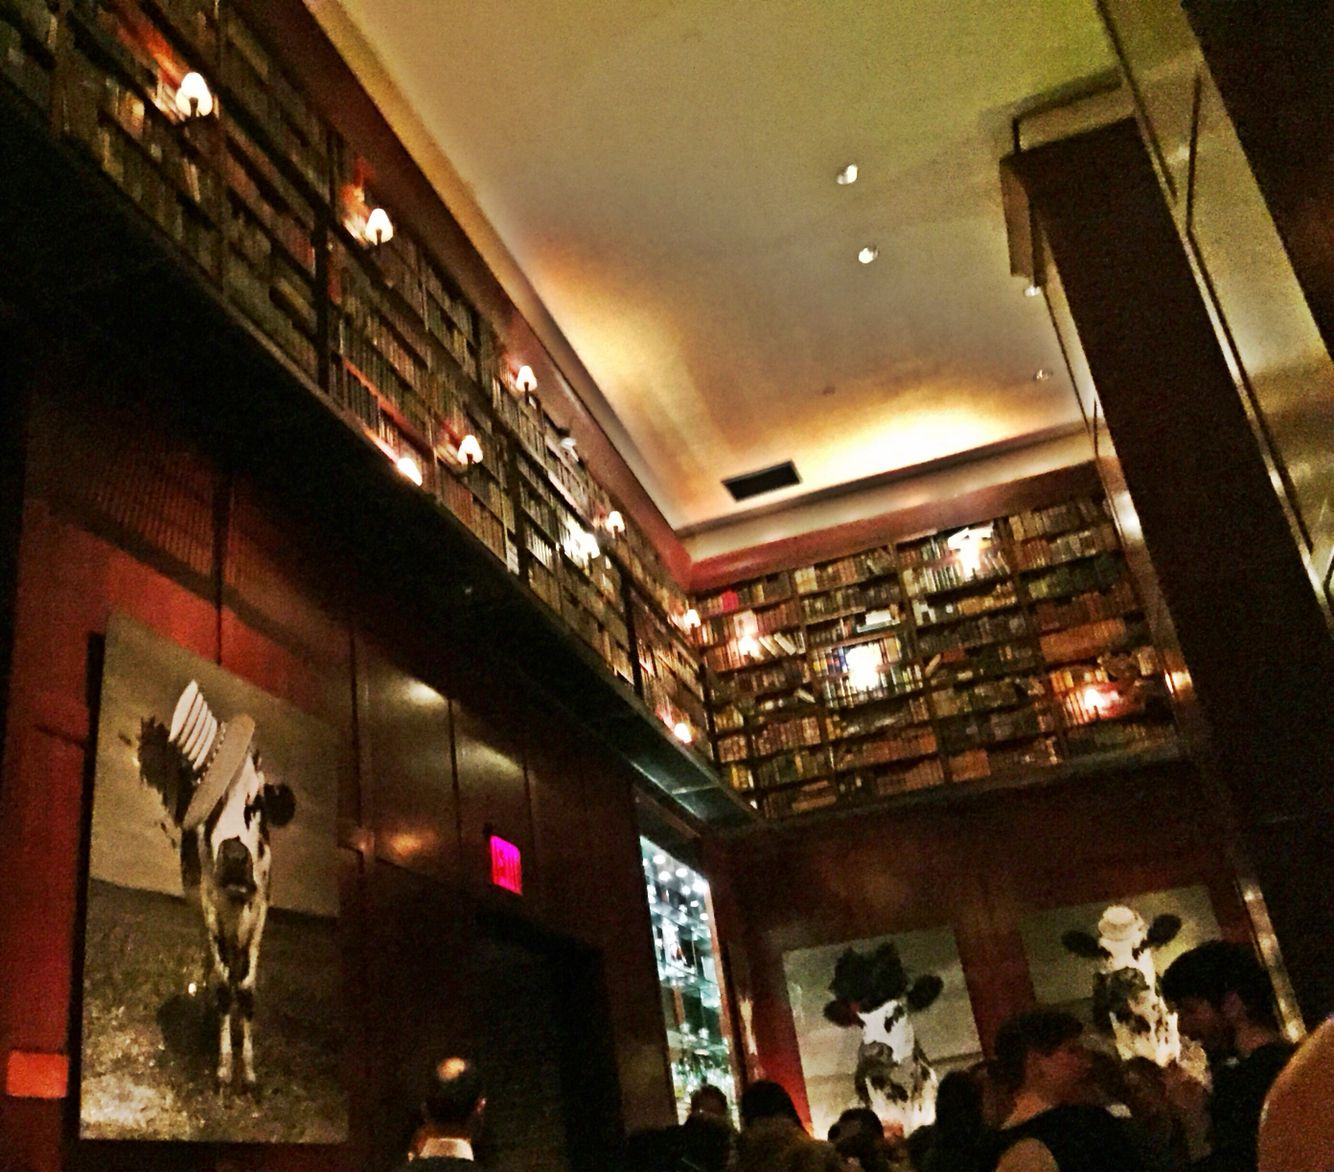 18 And Older Hotels In New York: The Library (bar) At The Hudson Hotel NYC